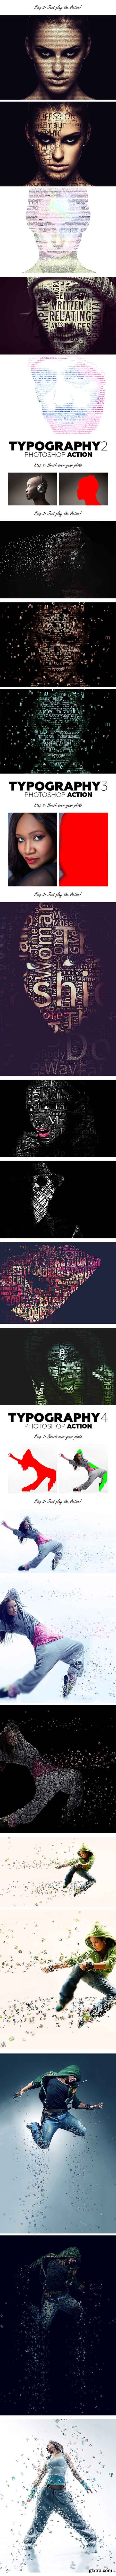 GraphicRiver - Typography 5in1 Photoshop Actions Bundle 21017709